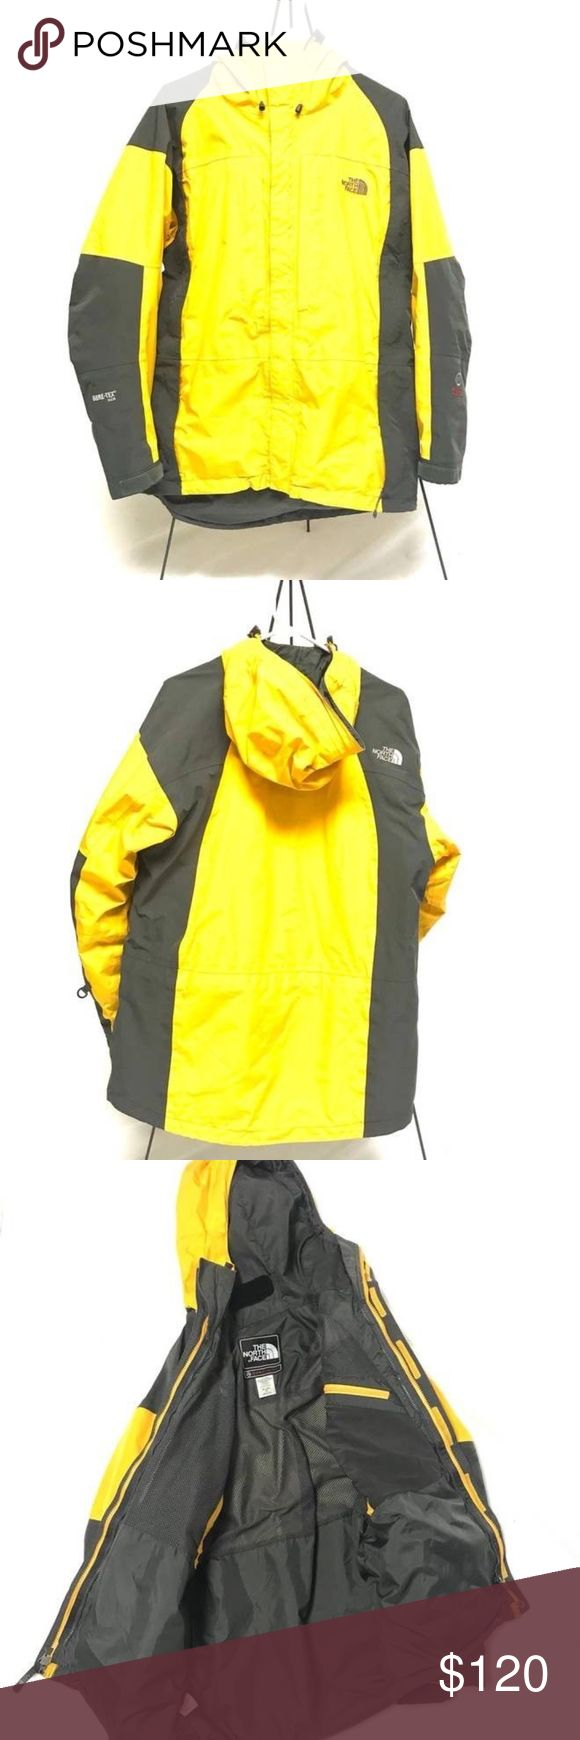 THE NORTH FACE Summit Series Gore Tex Jacket 100% Authentic   Beautiful jacket, unsure of the year   Yellow / grey   Nice condition, just general wear The North Face Jackets & Coats Raincoats